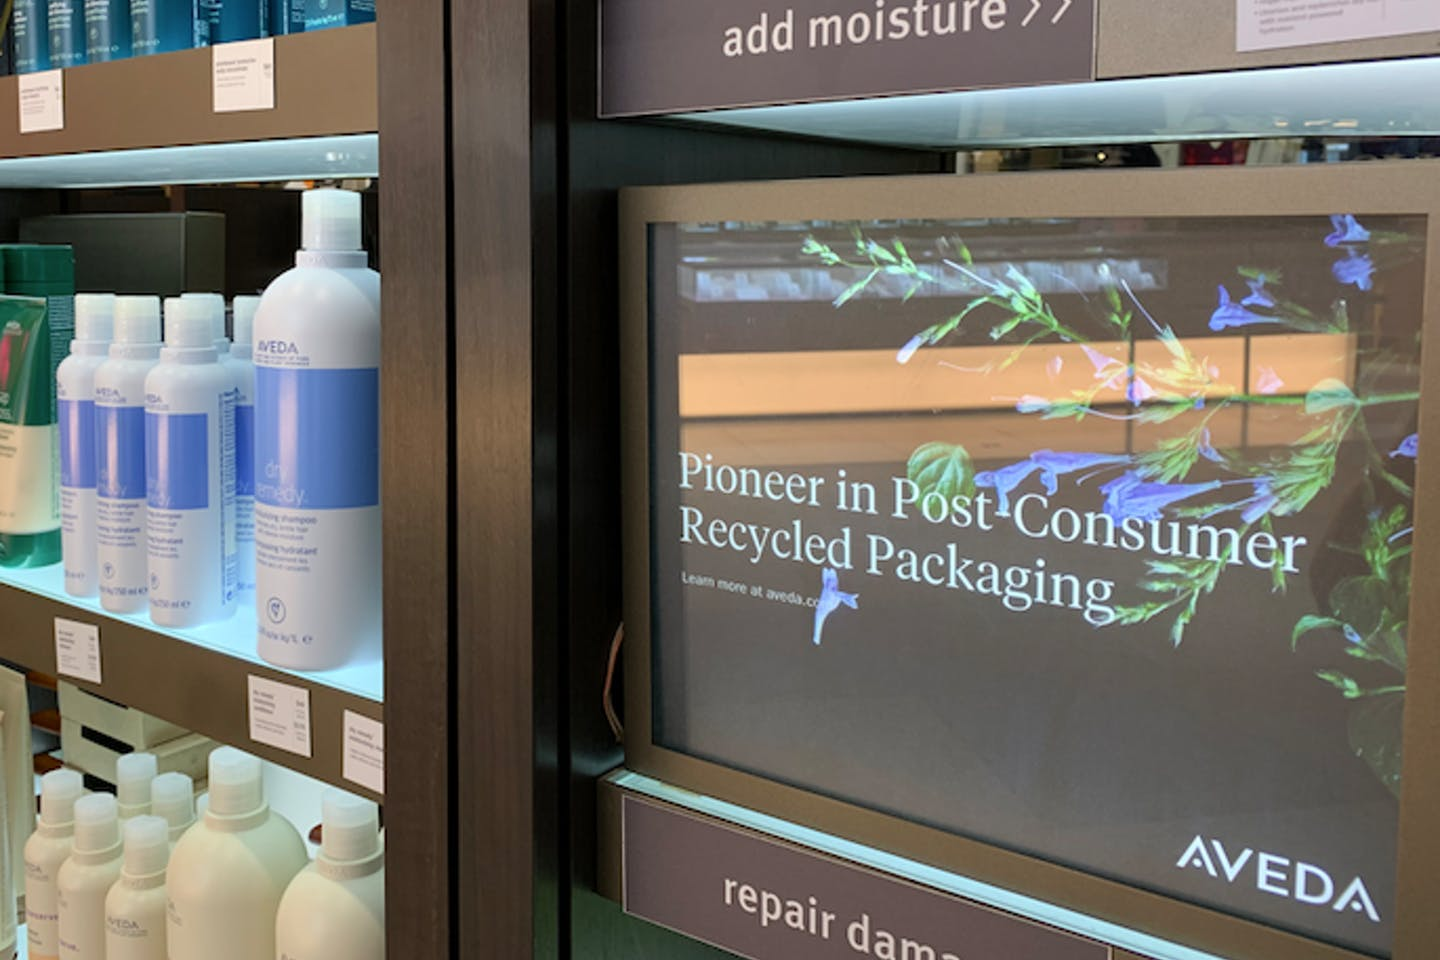 Aveda products, promoted as using post-consumer recycled plastic.